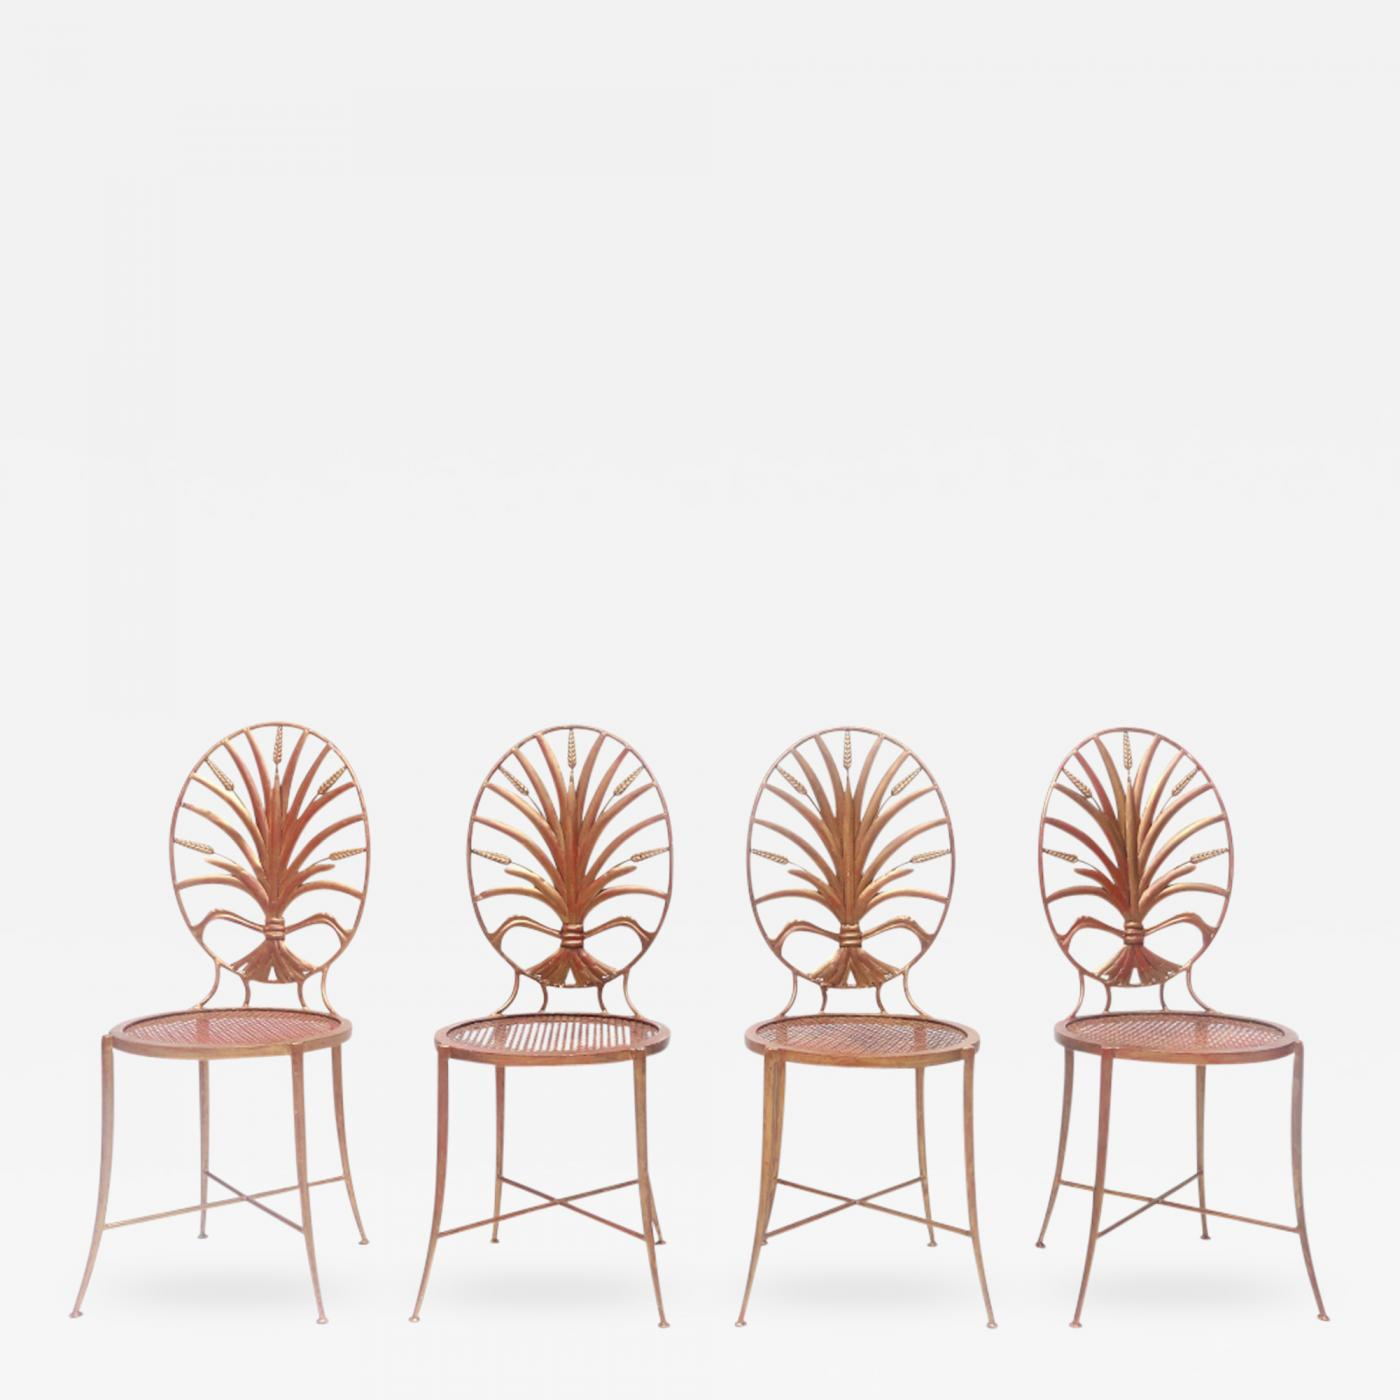 Listings / Furniture / Seating / Dining Chairs · Coco Chanel ...